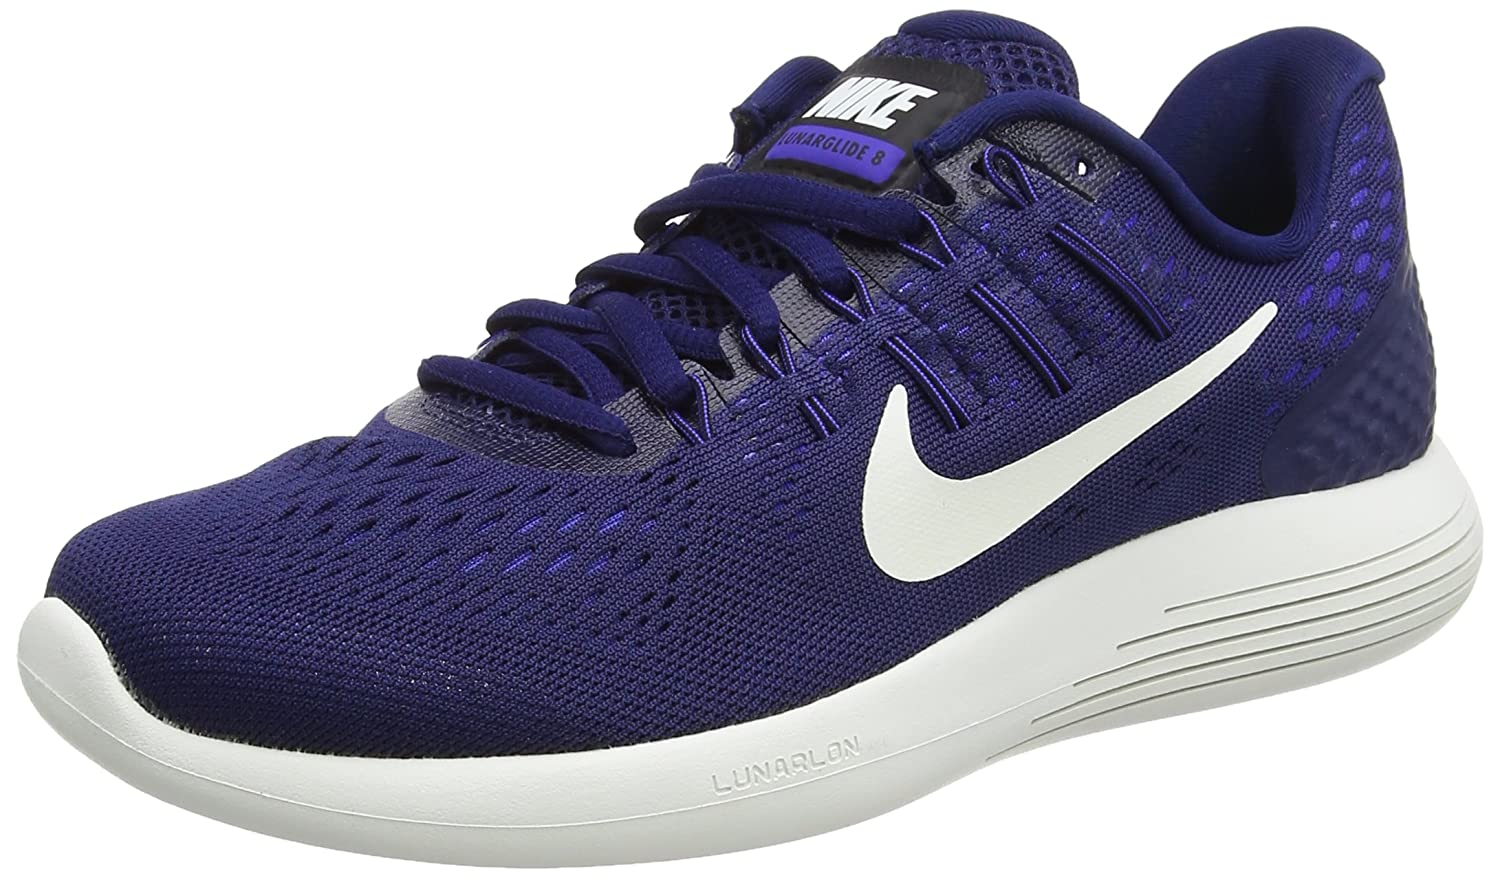 NIKE Women's Lunarglide 8 B01H5WPSP2 Medium / 6.5 B(M) US|Binary Blue/Summit White-black